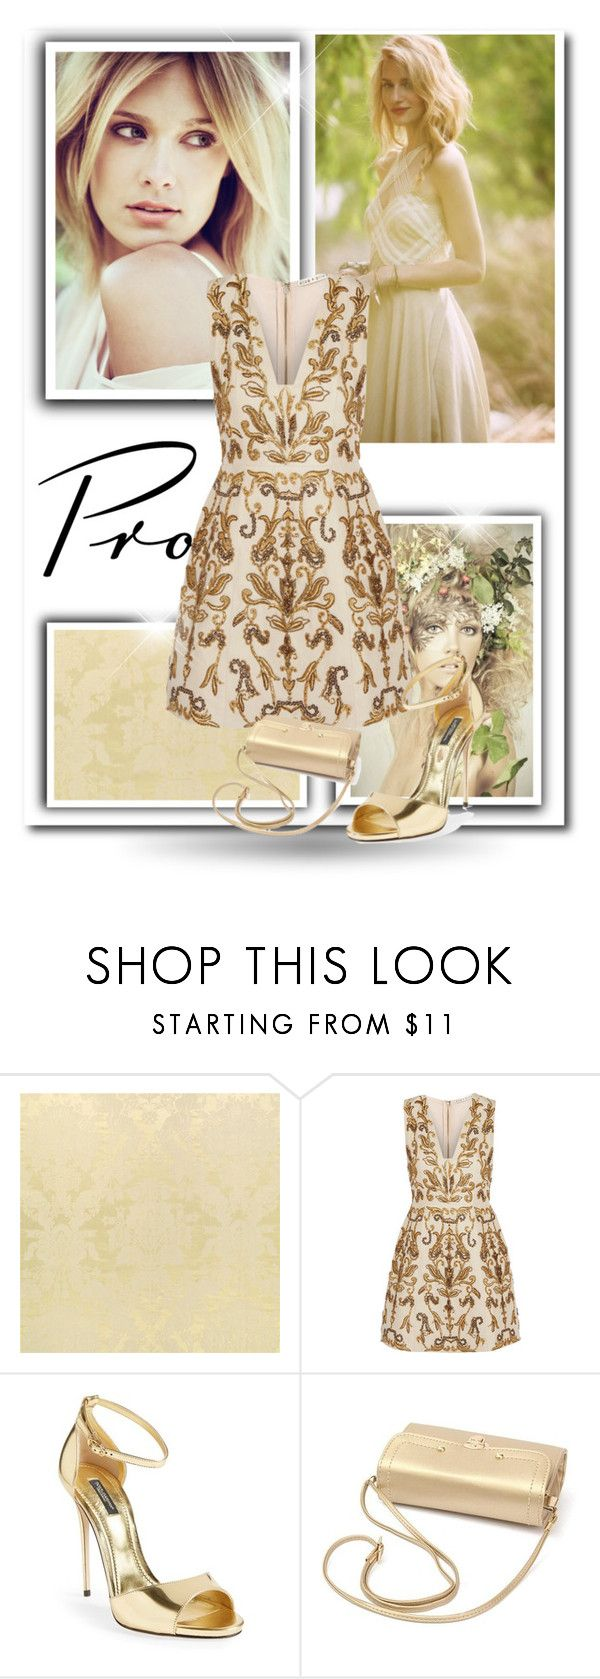 """""""Prom Do-Over: Your New Dream Dress"""" by avete ❤ liked on Polyvore featuring Free People, Alice + Olivia, Dolce&Gabbana and promdoover"""